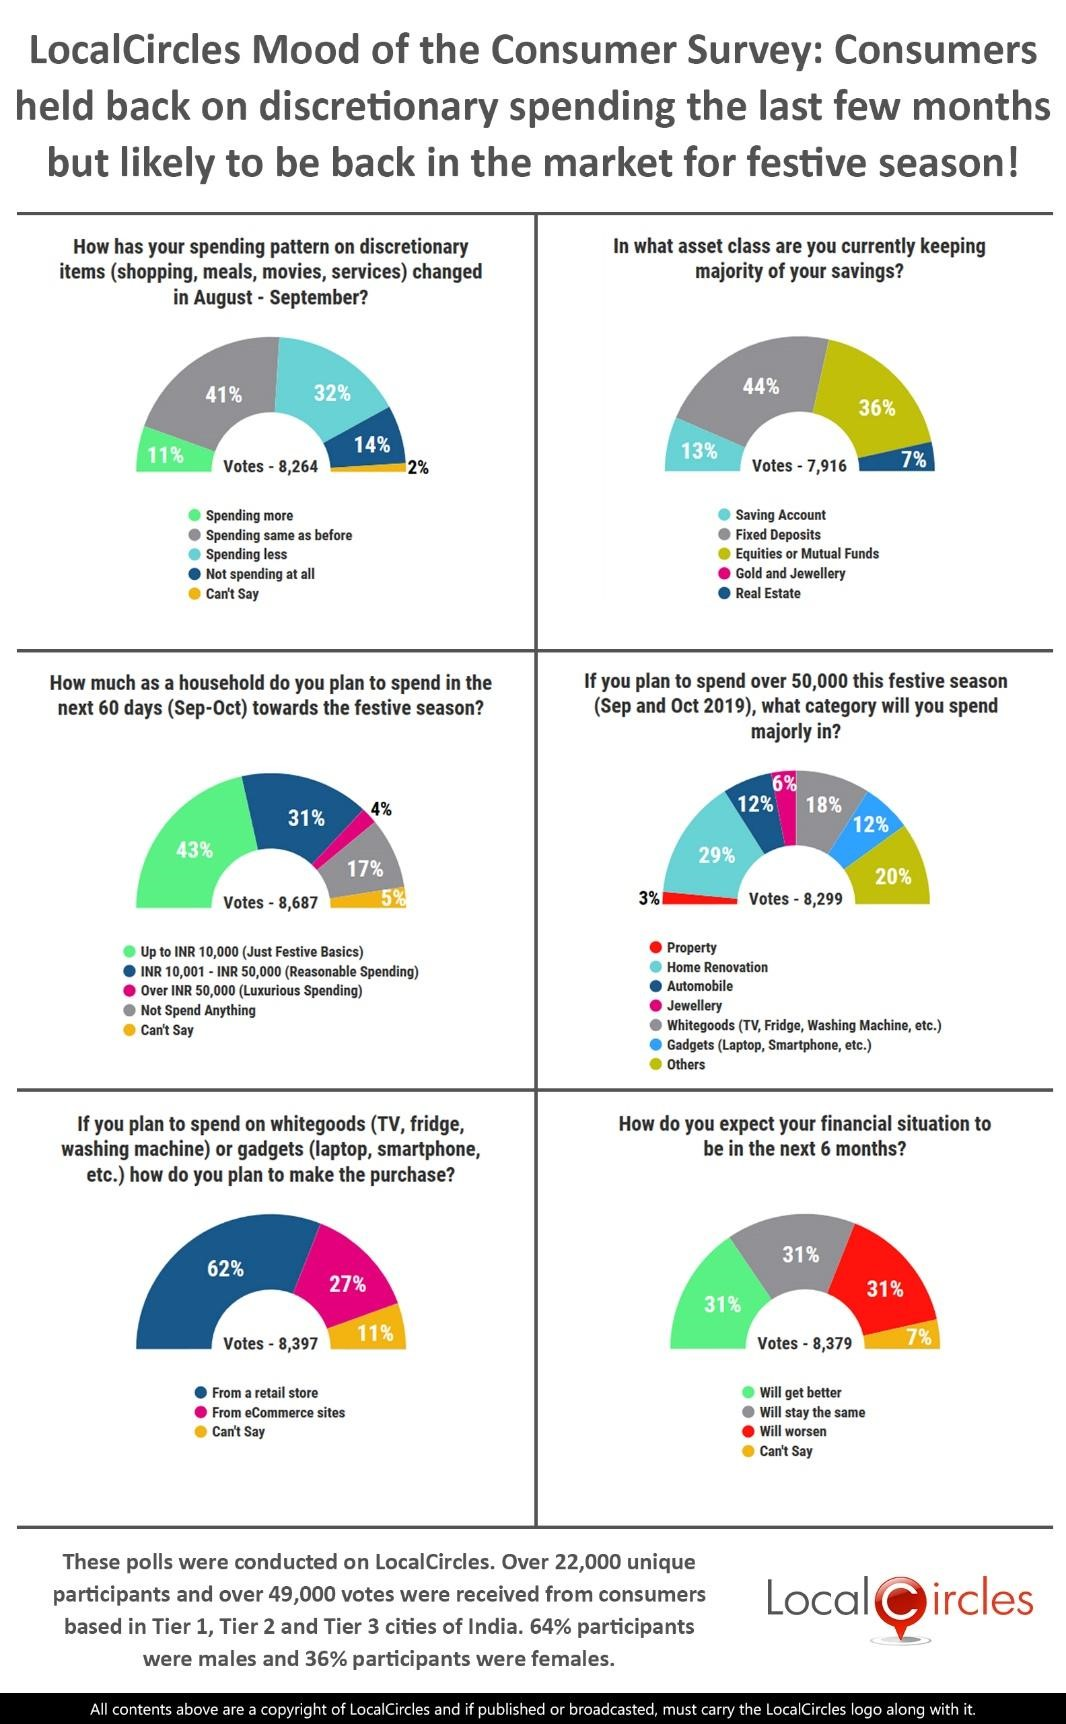 LocalCircles Mood of the Consumer Survey: Consumers held back on discretionary spending in the last few months but likely to be back in the market for festive season